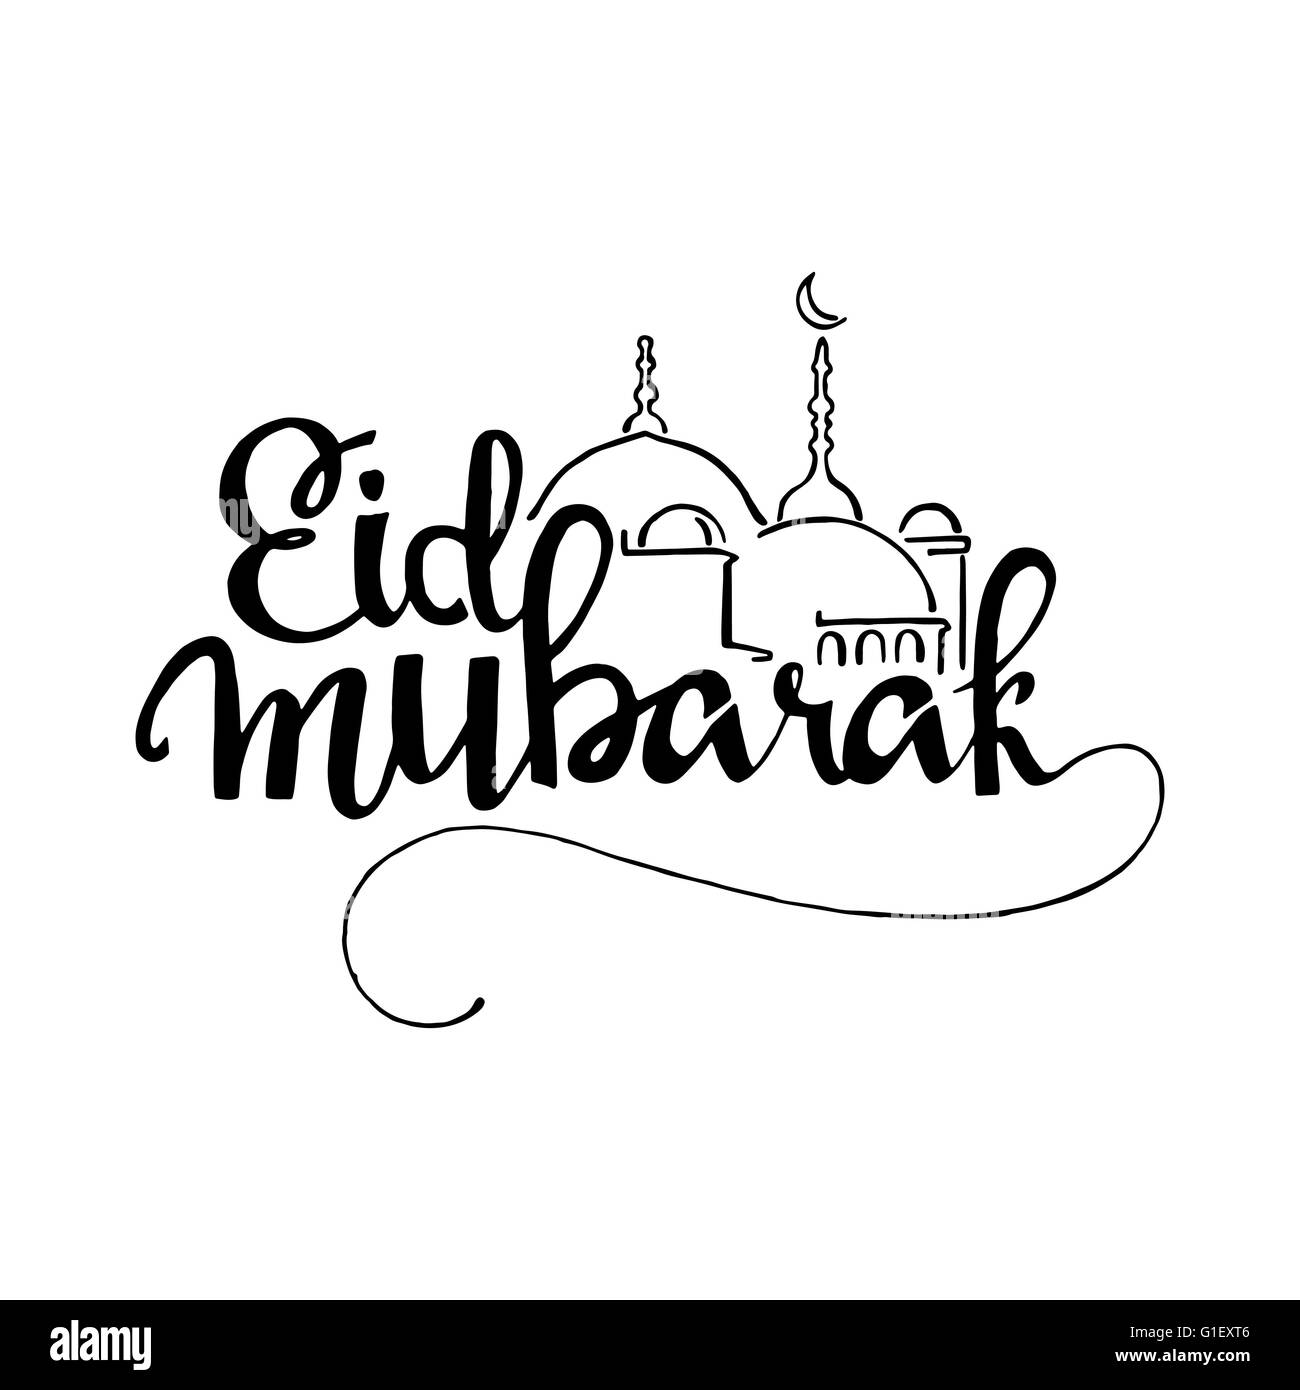 Eid Mubarak Handwritten Lettering Modern Calligraphy Vector Isolated On White Background